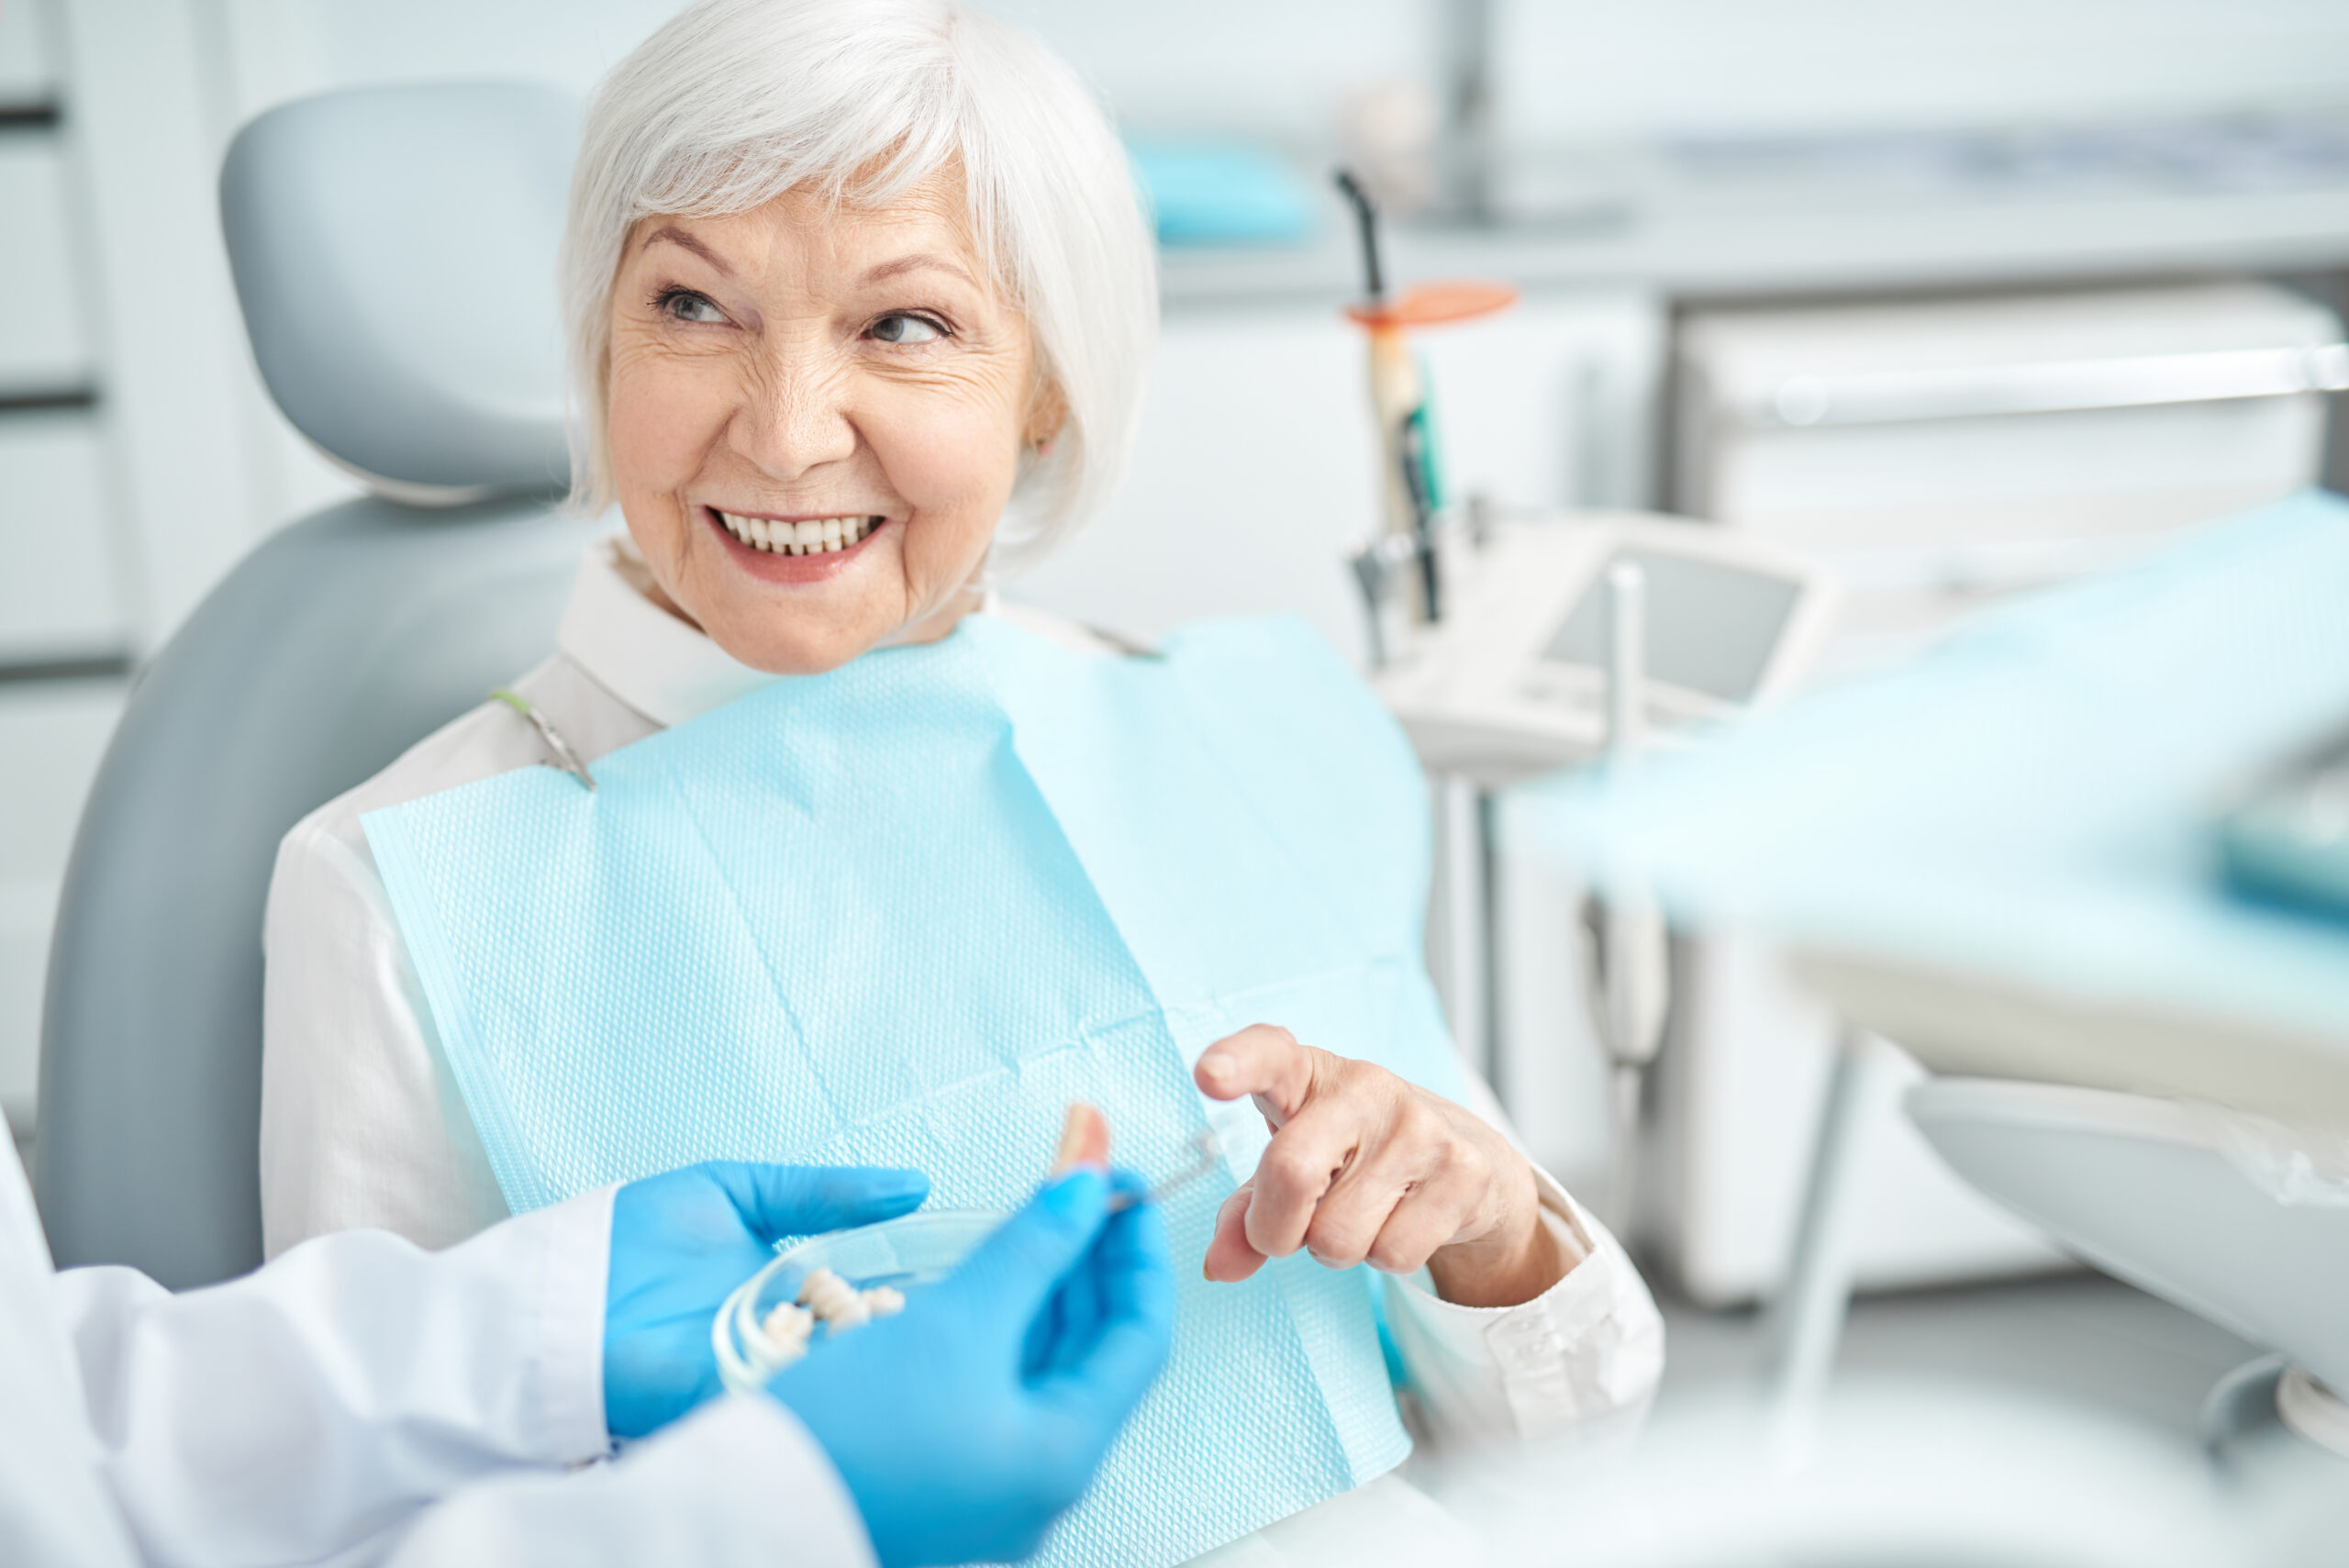 Smiling elderly woman looking at her doctor stock photo